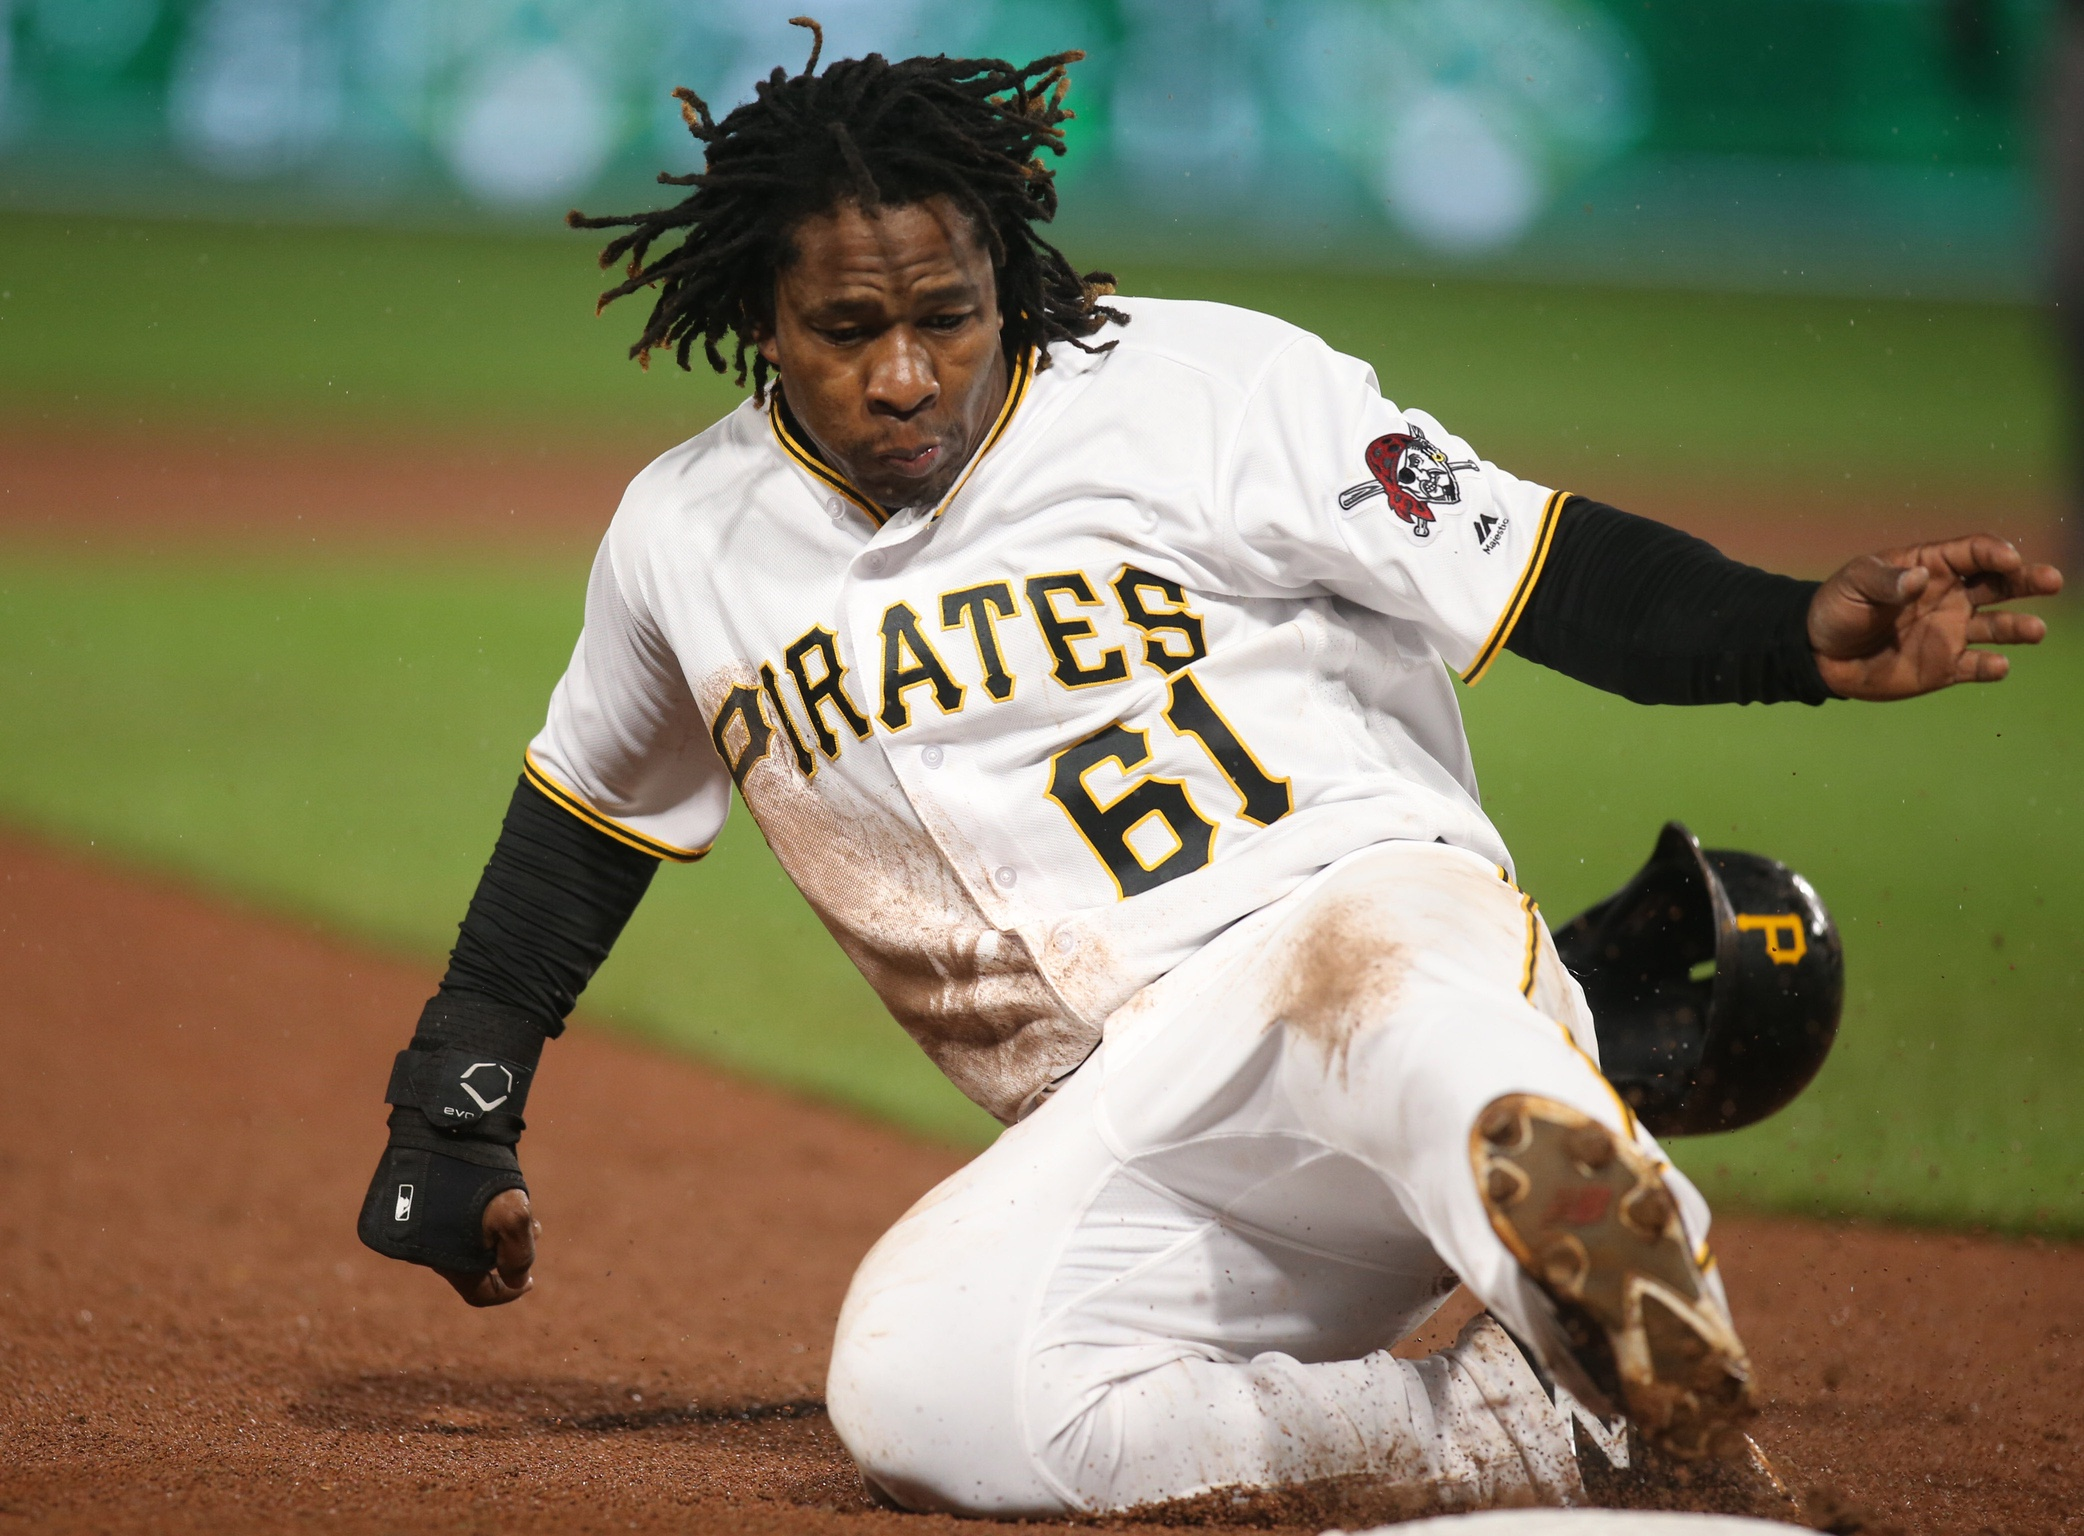 May 6, 2017; Pittsburgh, PA, USA; Pittsburgh Pirates second baseman Gift Ngoepe (61) advances to third base against the Milwaukee Brewers during the tenth inning at PNC Park. Mandatory Credit: Charles LeClaire-USA TODAY Sports